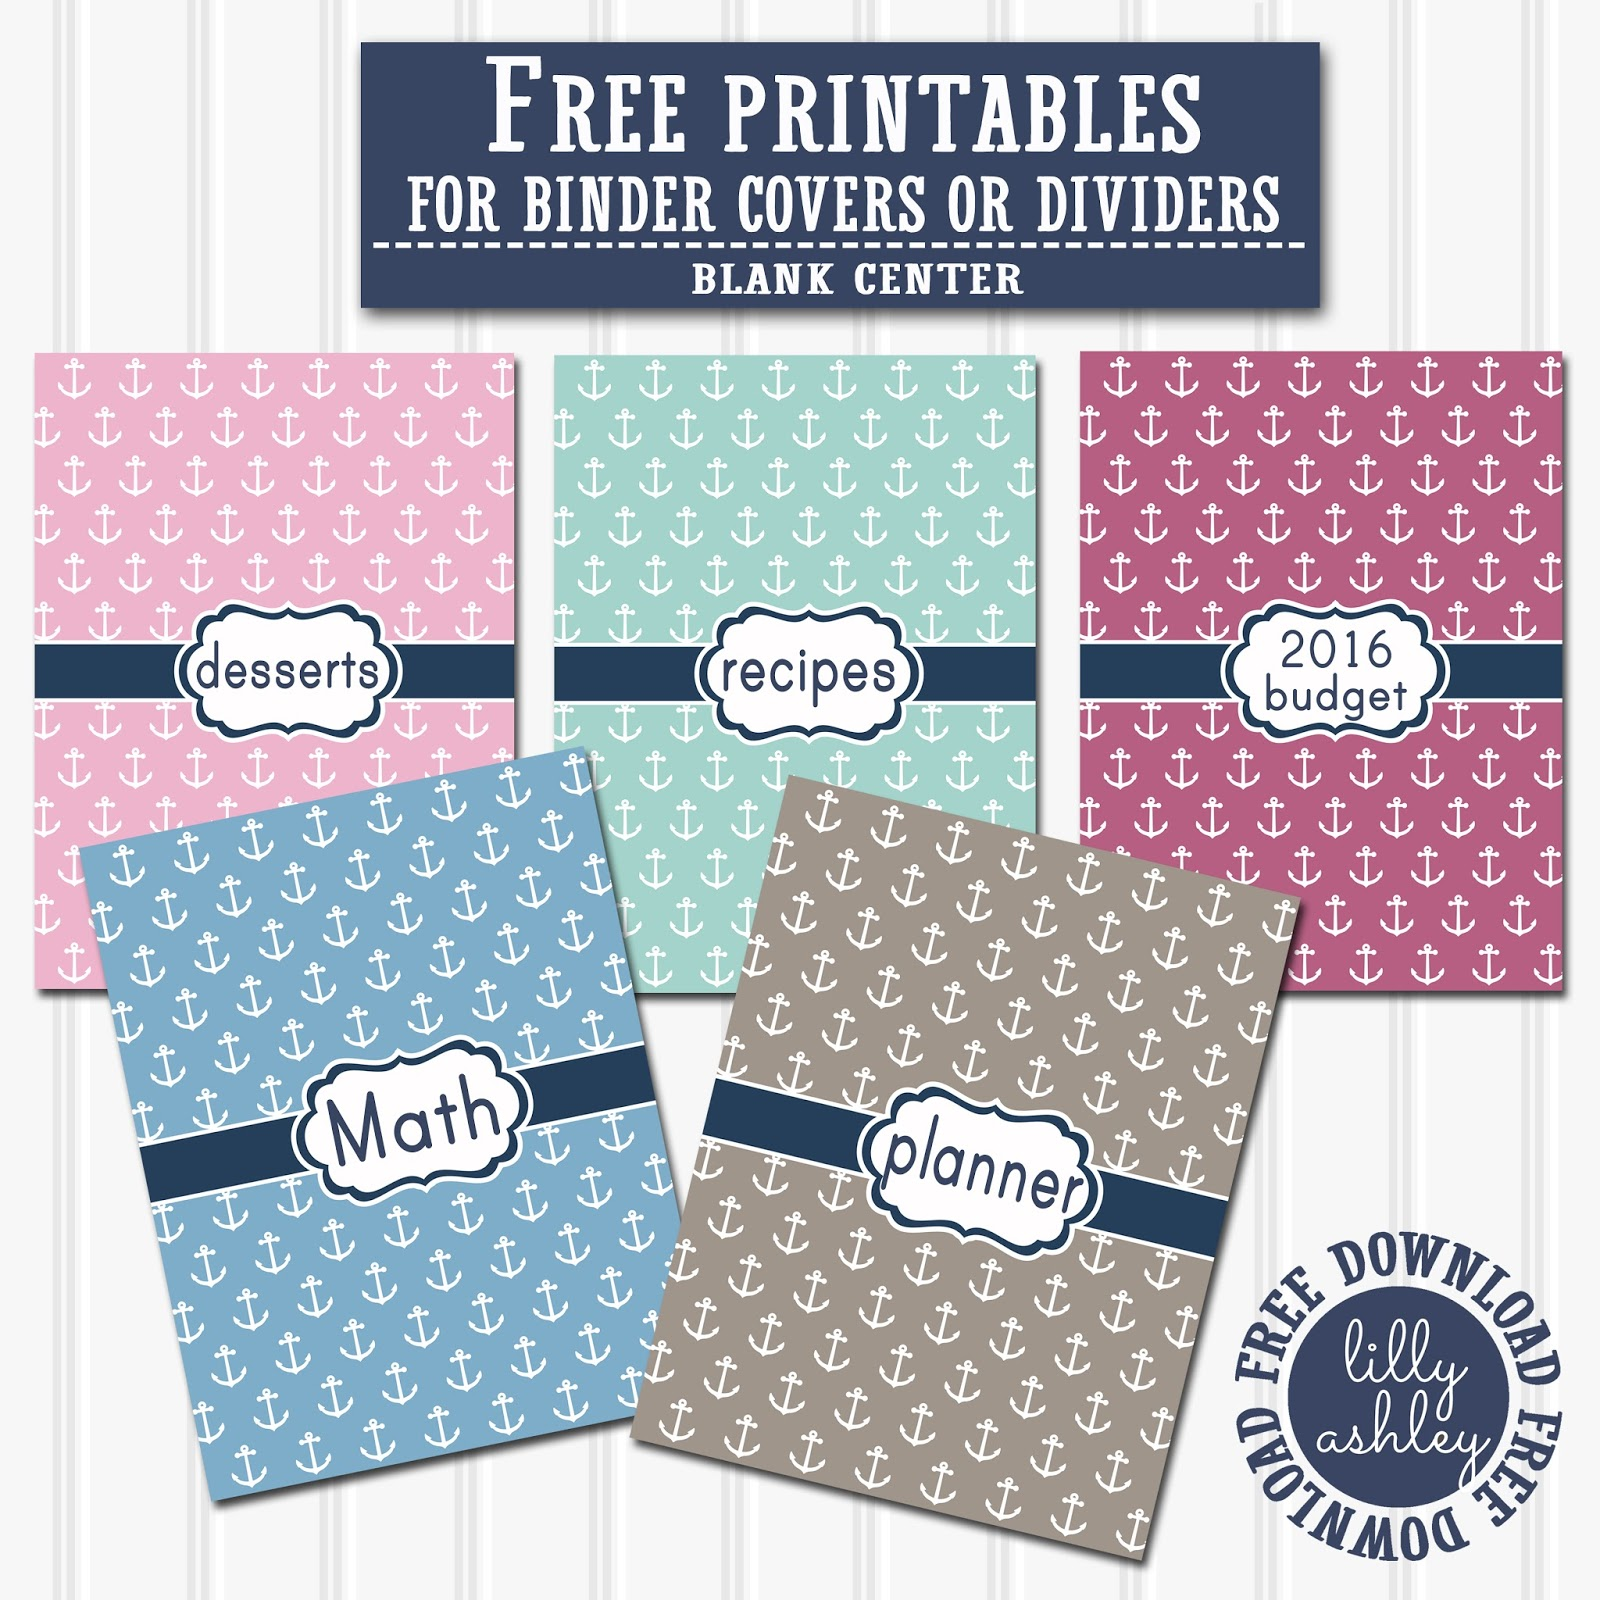 Make It Create...Free Cut Files And Printables: Free